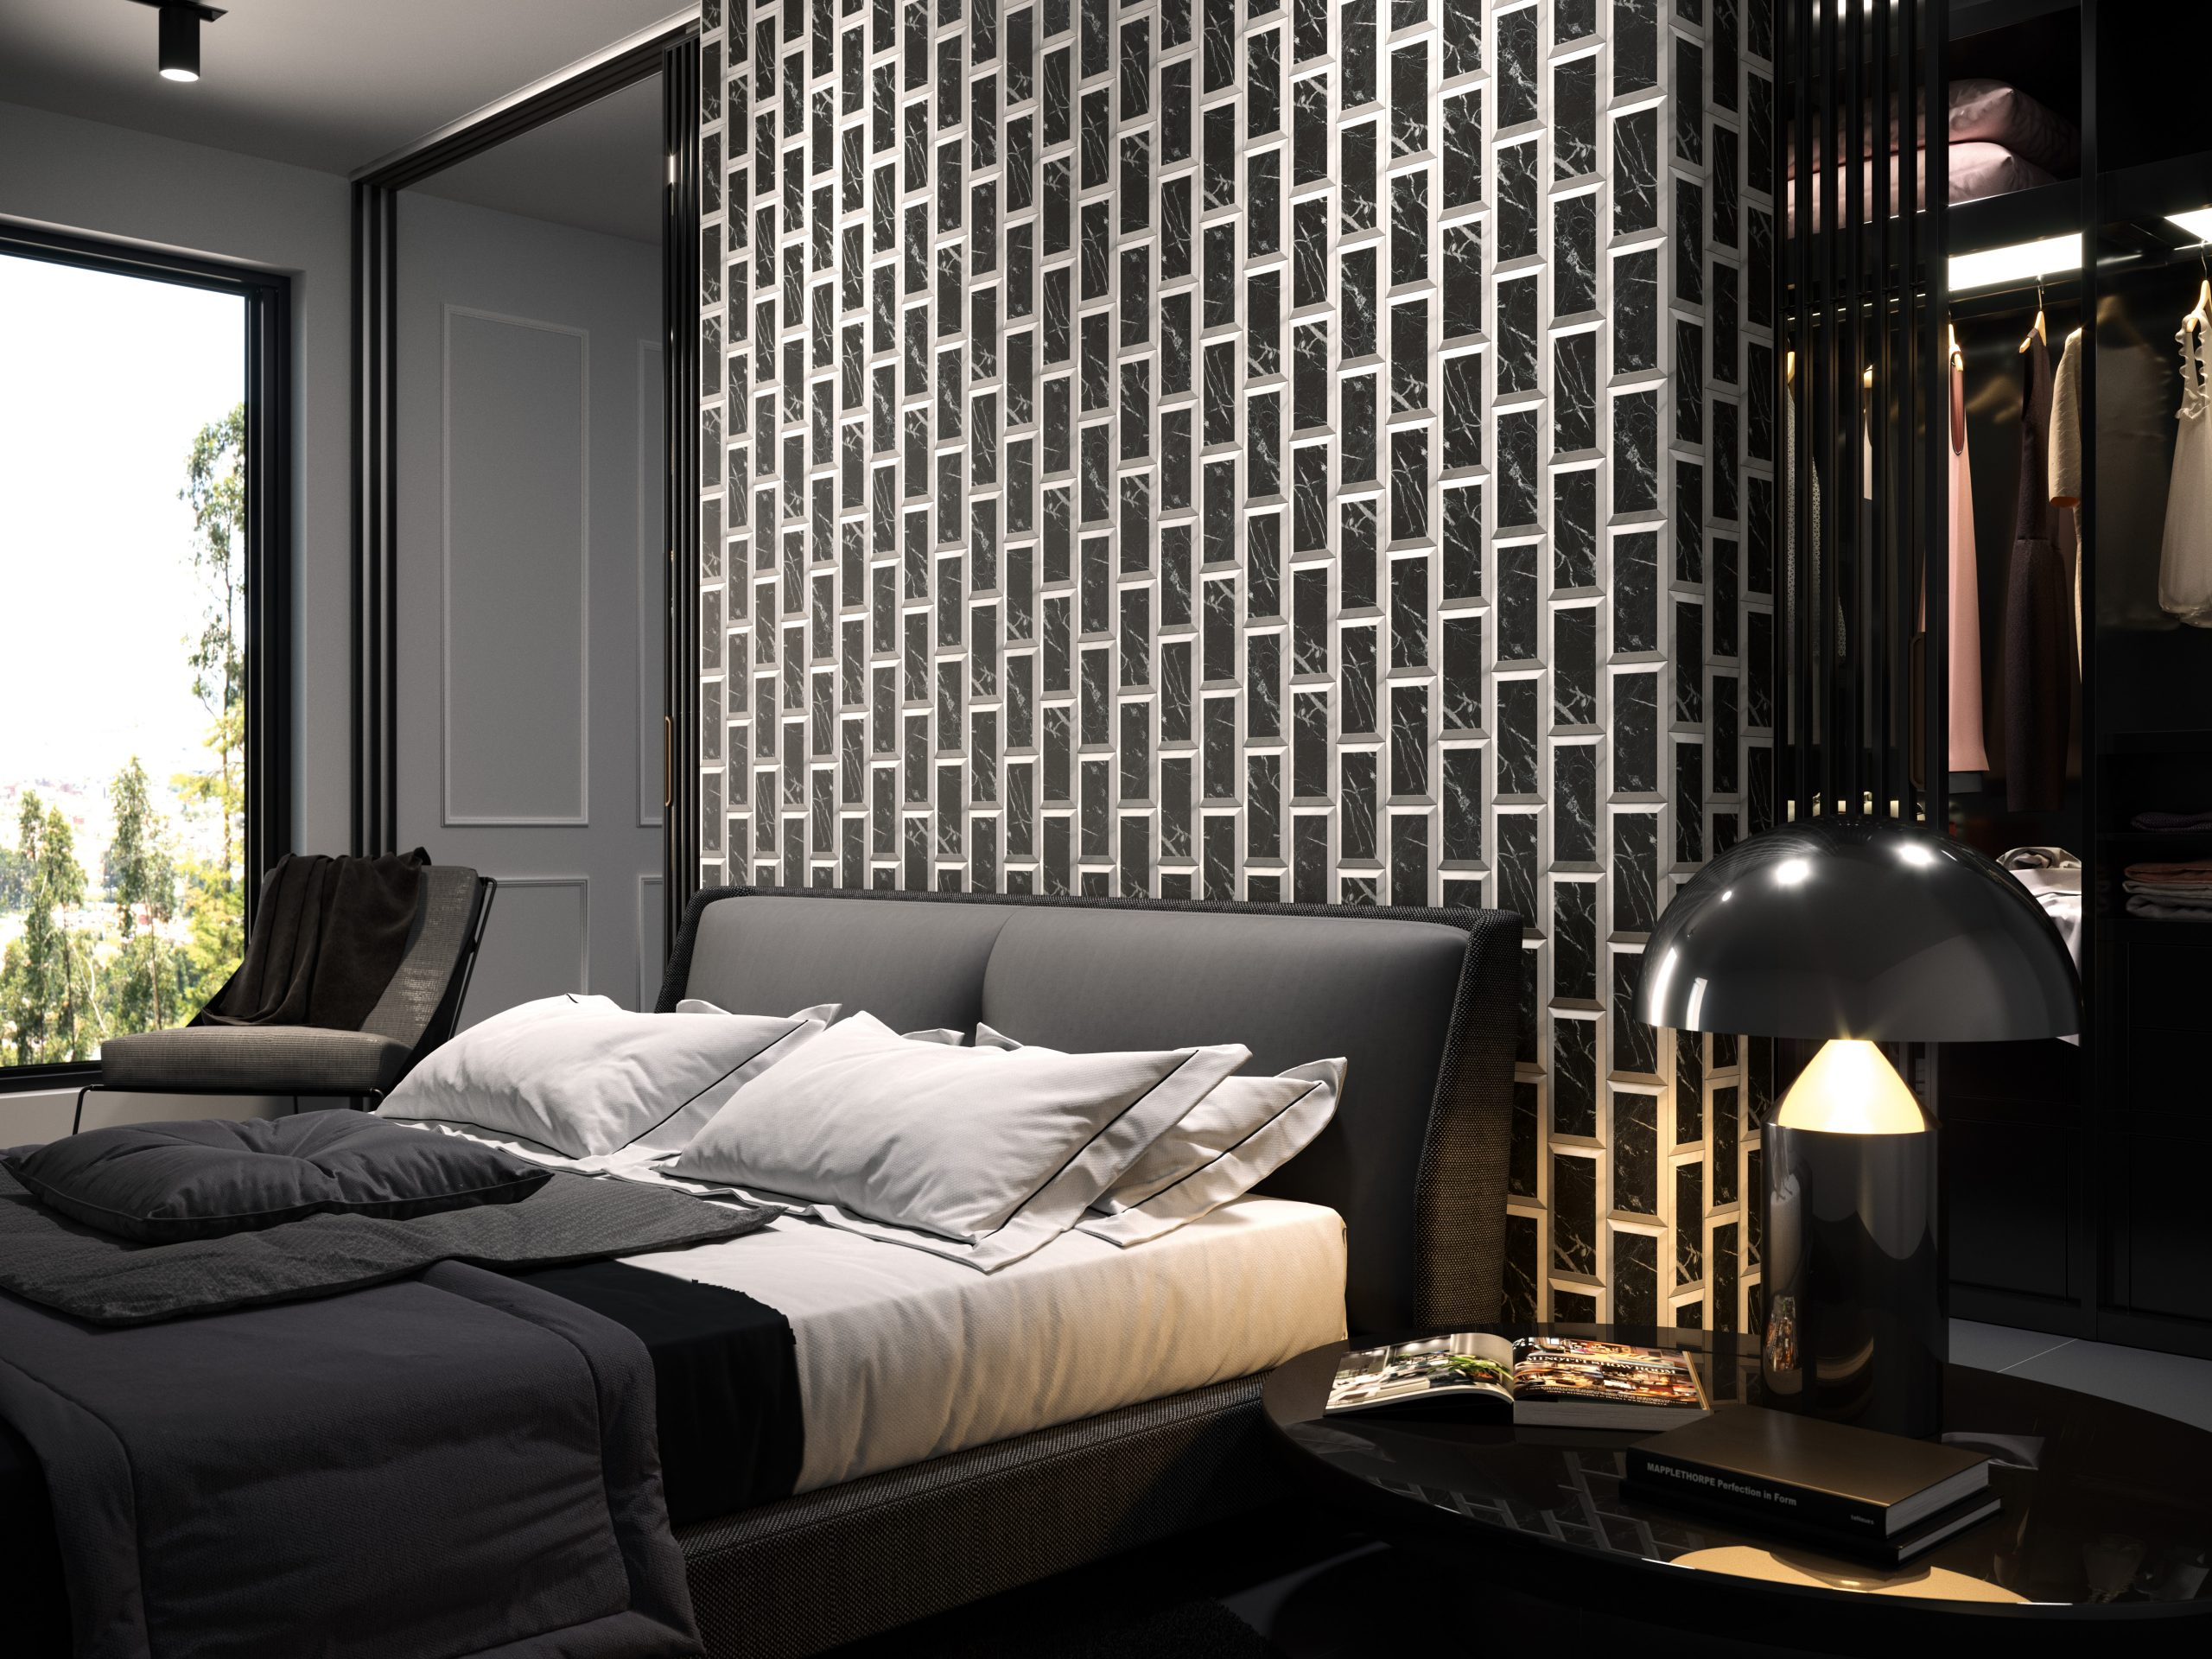 Museum Black Marble Carrara Subway Accent Wall Miami Trendy Inspo Commercial Associates Tile Manufacturing